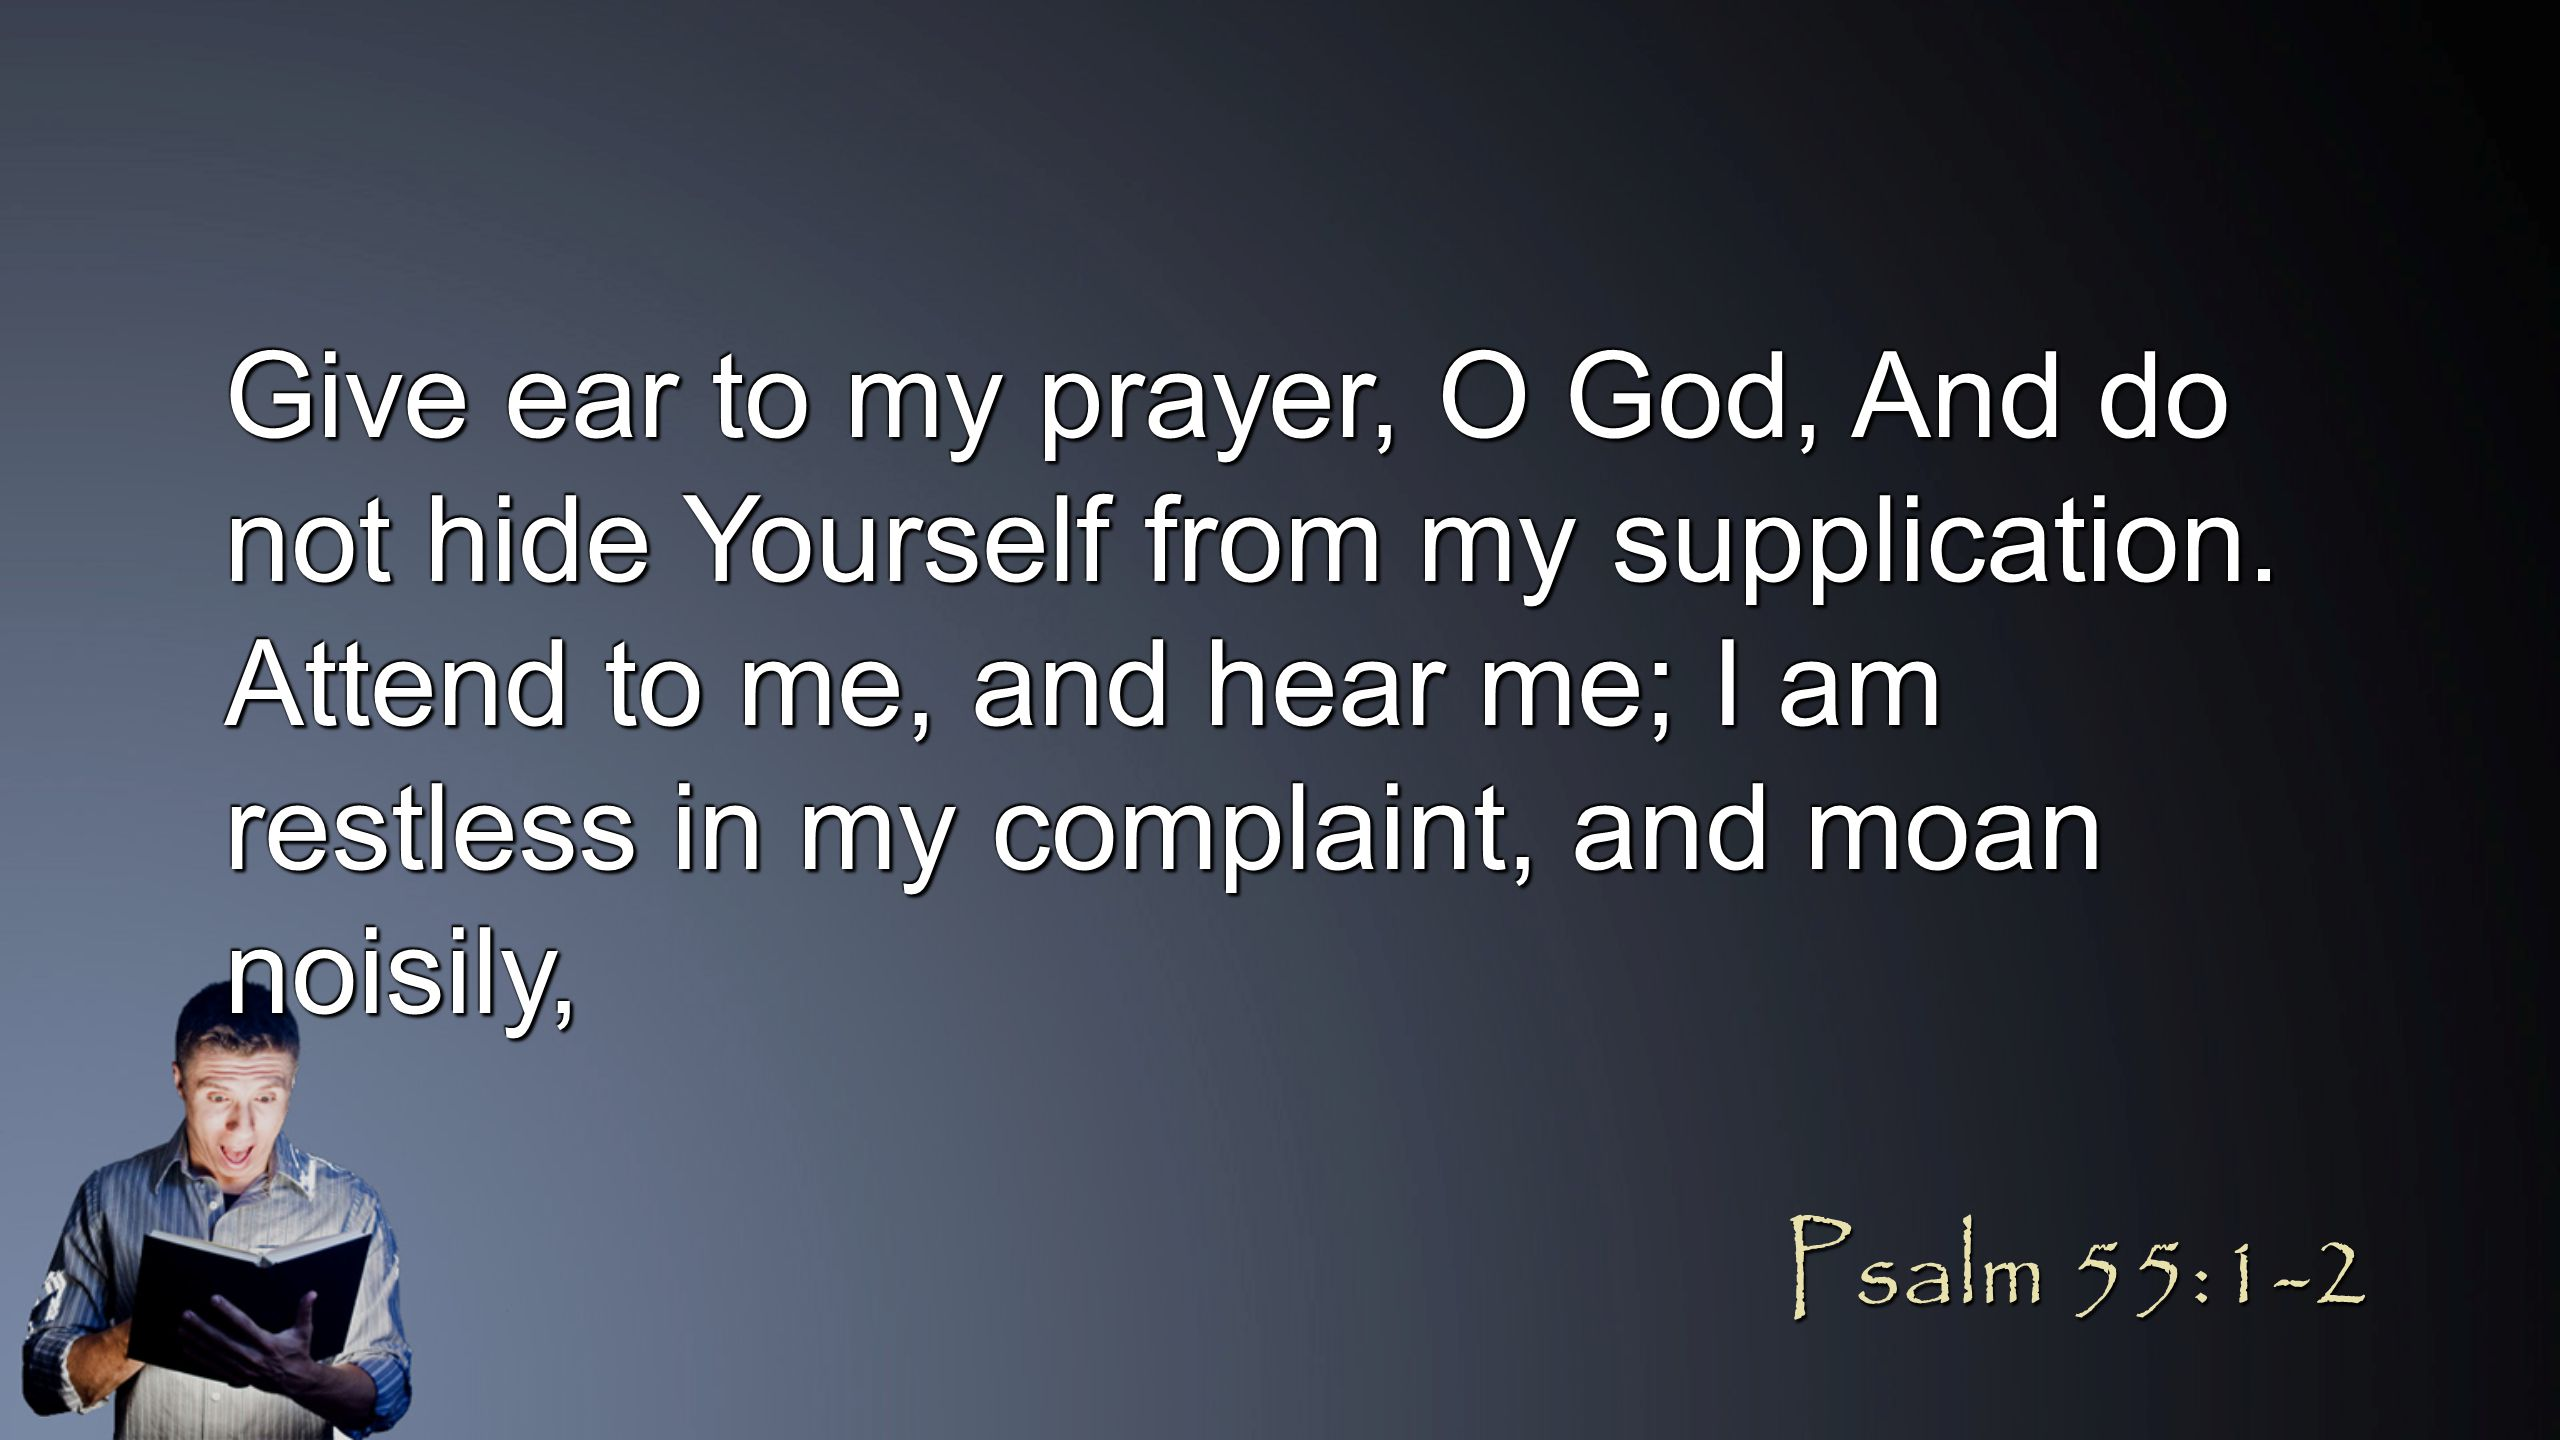 Give ear to my prayer, O God, And do not hide Yourself from my supplication.